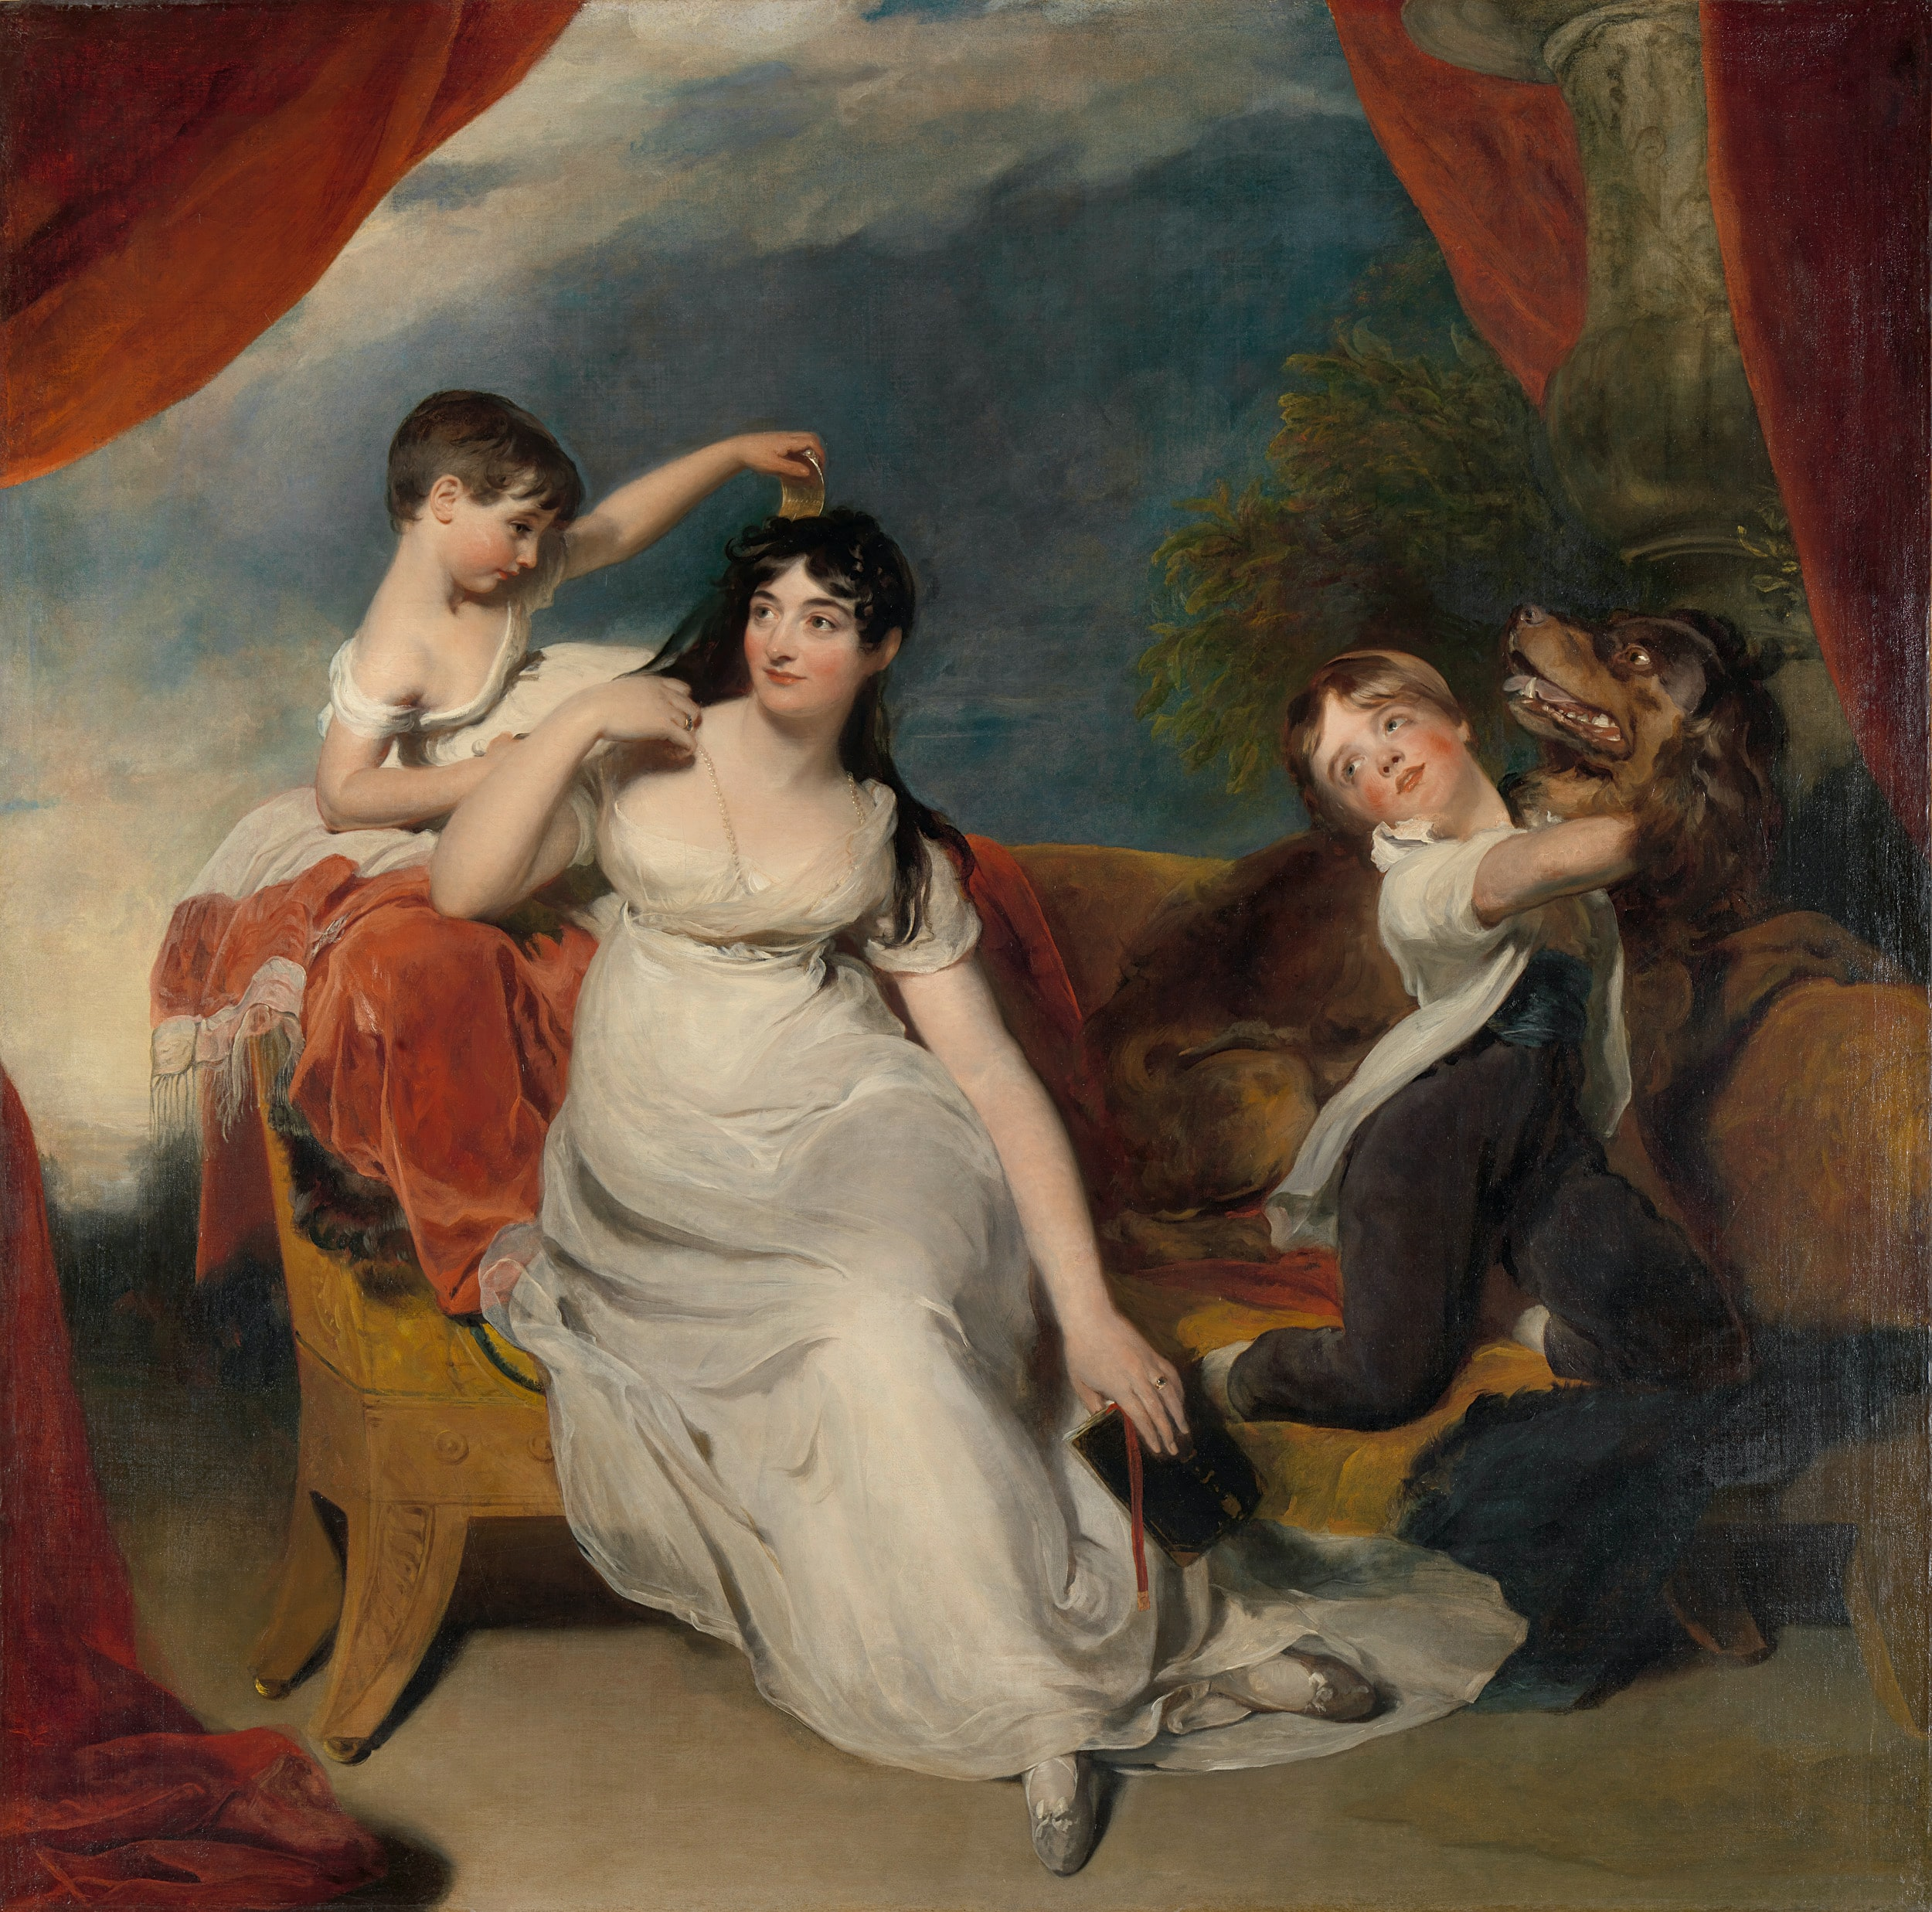 Maria Mathilda Bingham with two of her children Thomas Lawrence 1810 - 1818, Oil on canvas